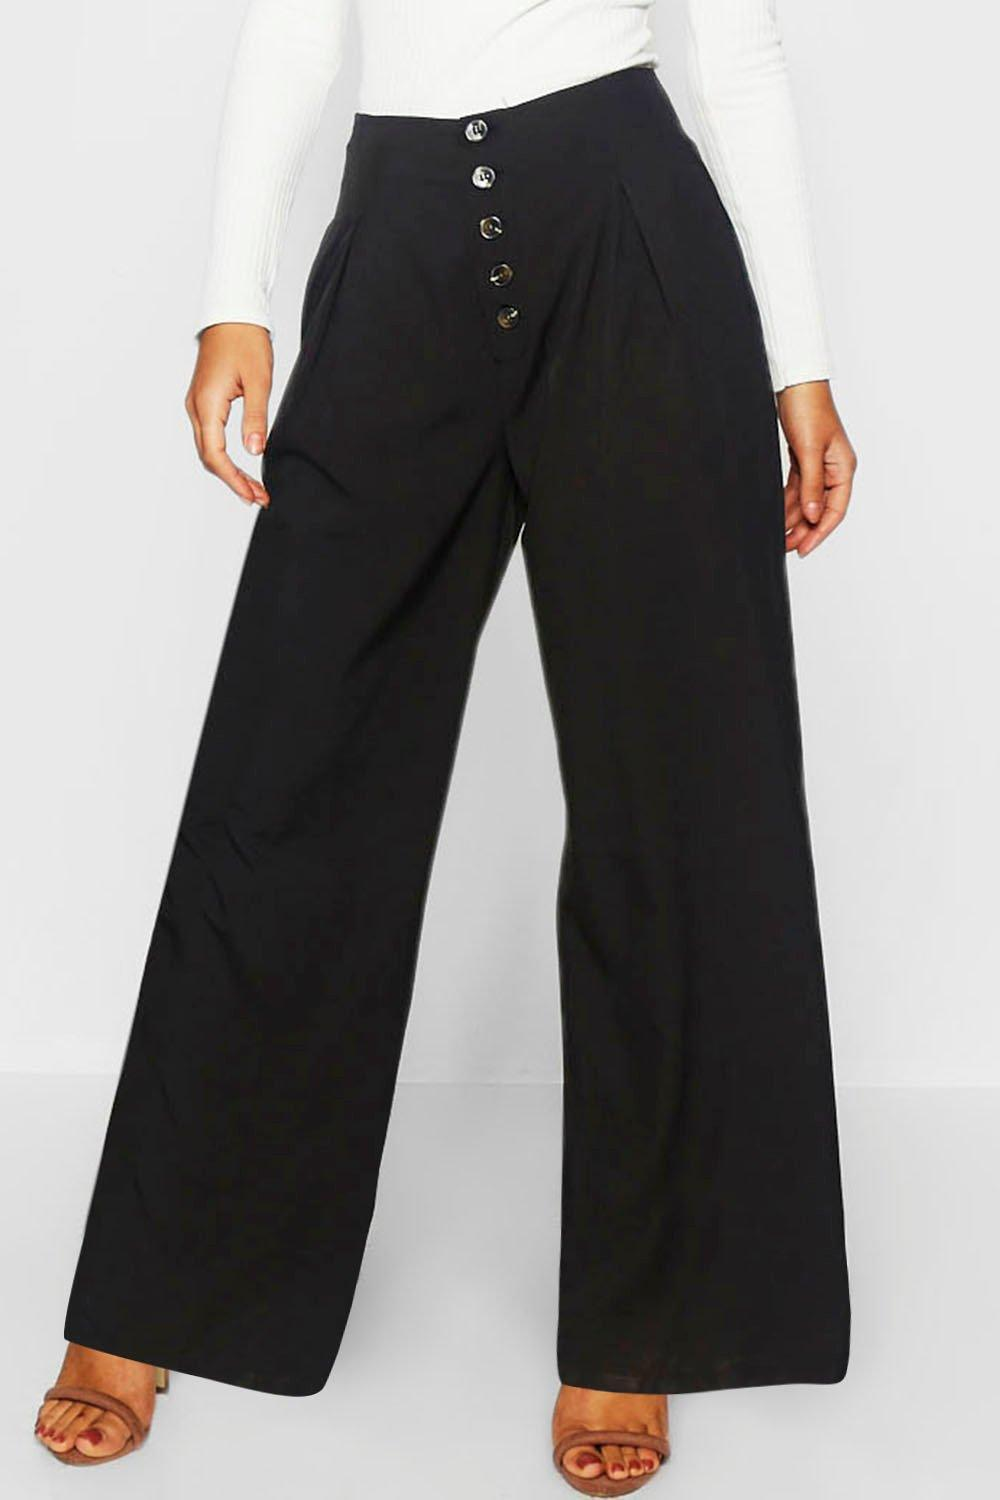 6d3be7402a7d Boohoo - Black Mock Horn Button Wide Leg Trouser - Lyst. View fullscreen